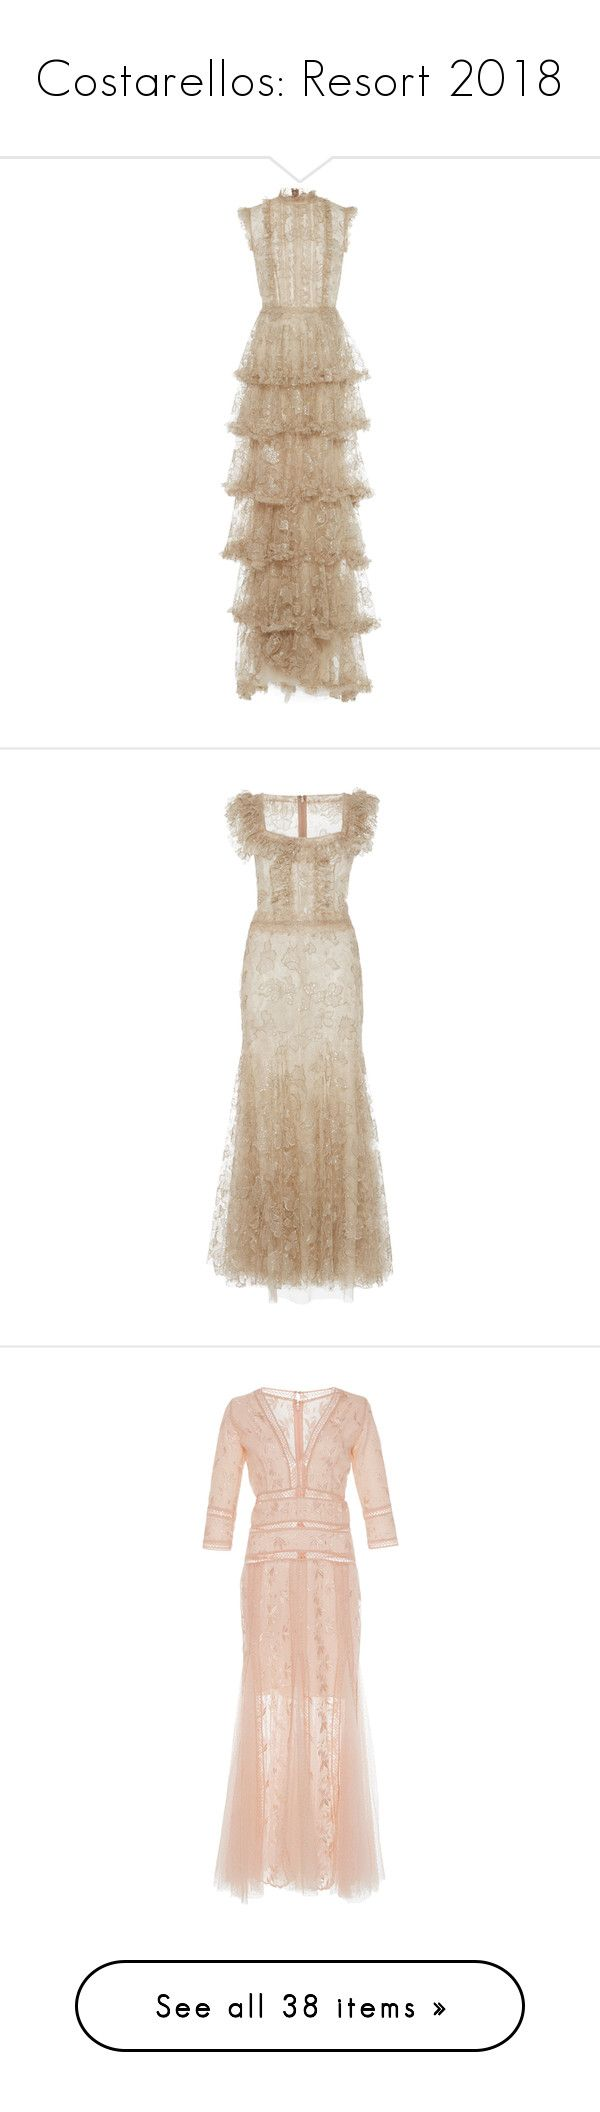 """""""Costarellos: Resort 2018"""" by livnd ❤ liked on Polyvore featuring Costarellos, livndfashion, livndcostarellos, resort2018, dresses, neutral, jacquier tiered-tulle dress, lace cocktail dresses, brown lace dress and brown dress"""